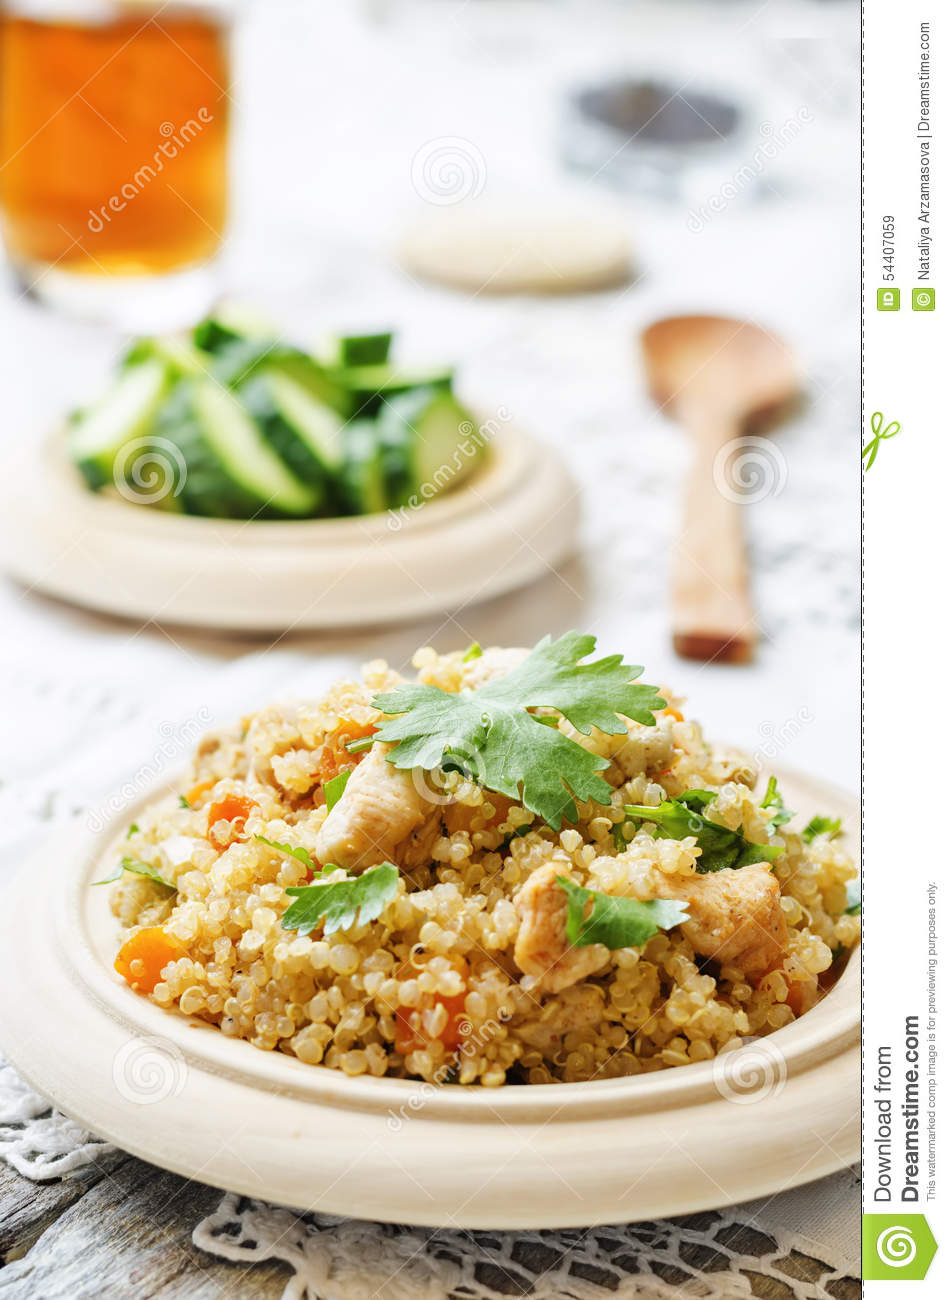 Quinoa Pilaf With Chicken And Vegetables Stock Photo ...